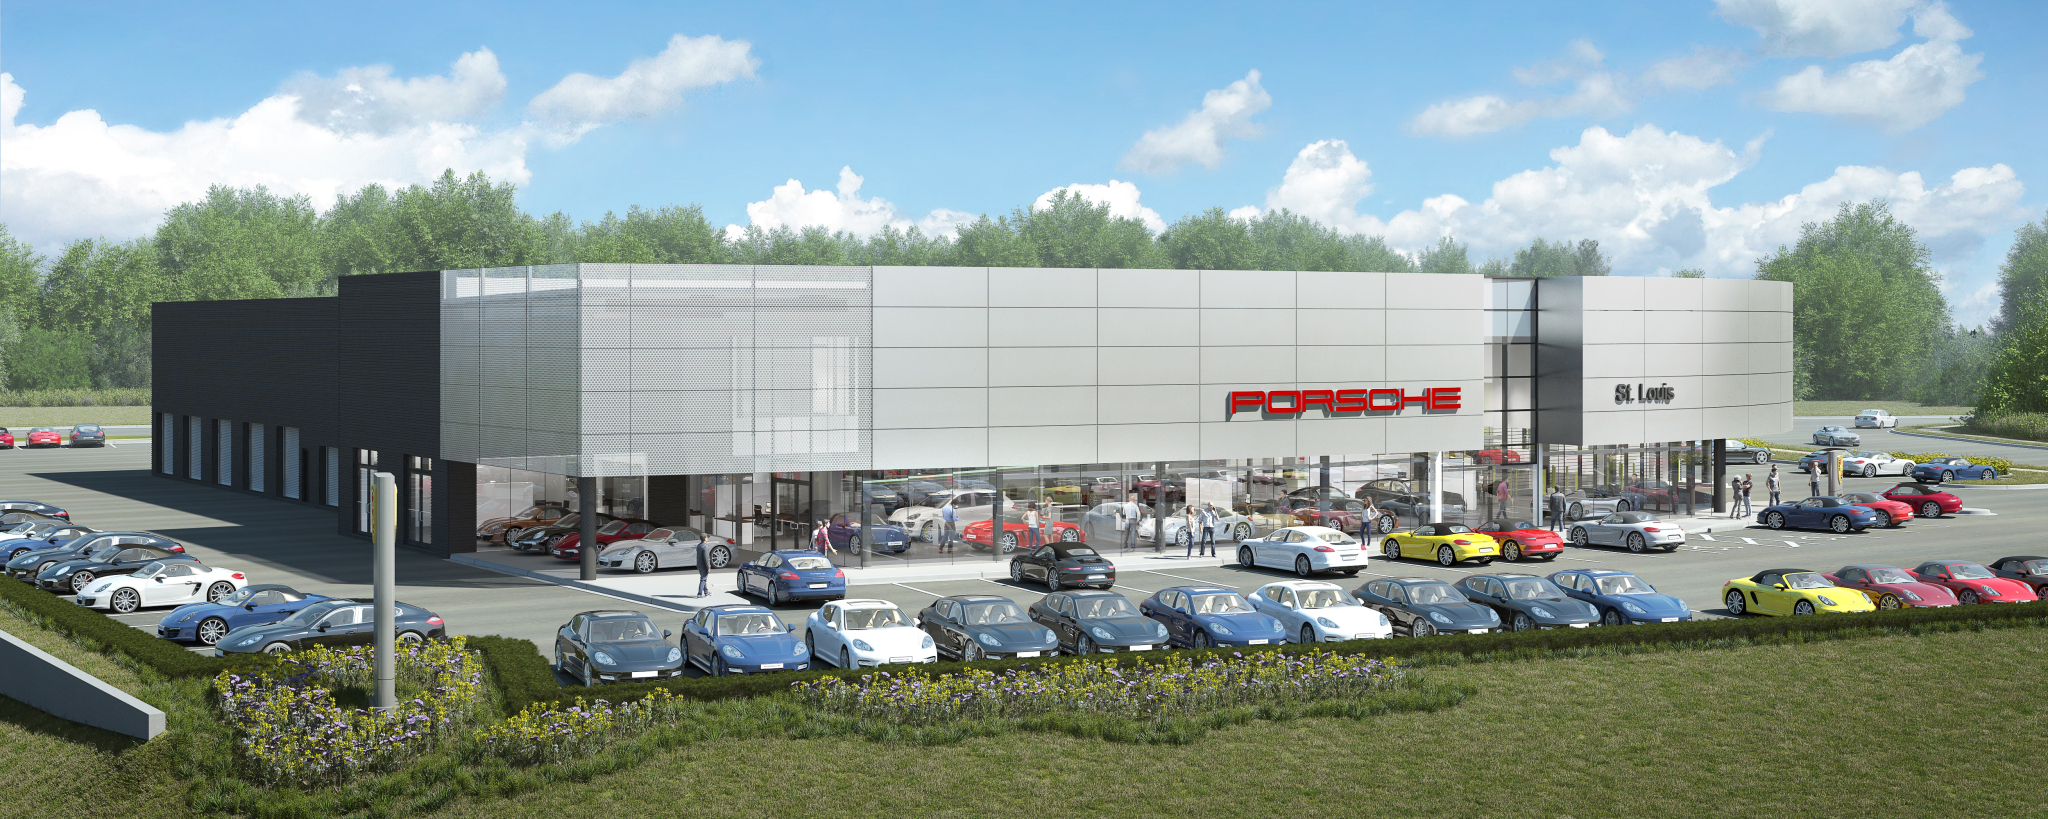 Porsche St Louis Update On The New Porsche St Louis